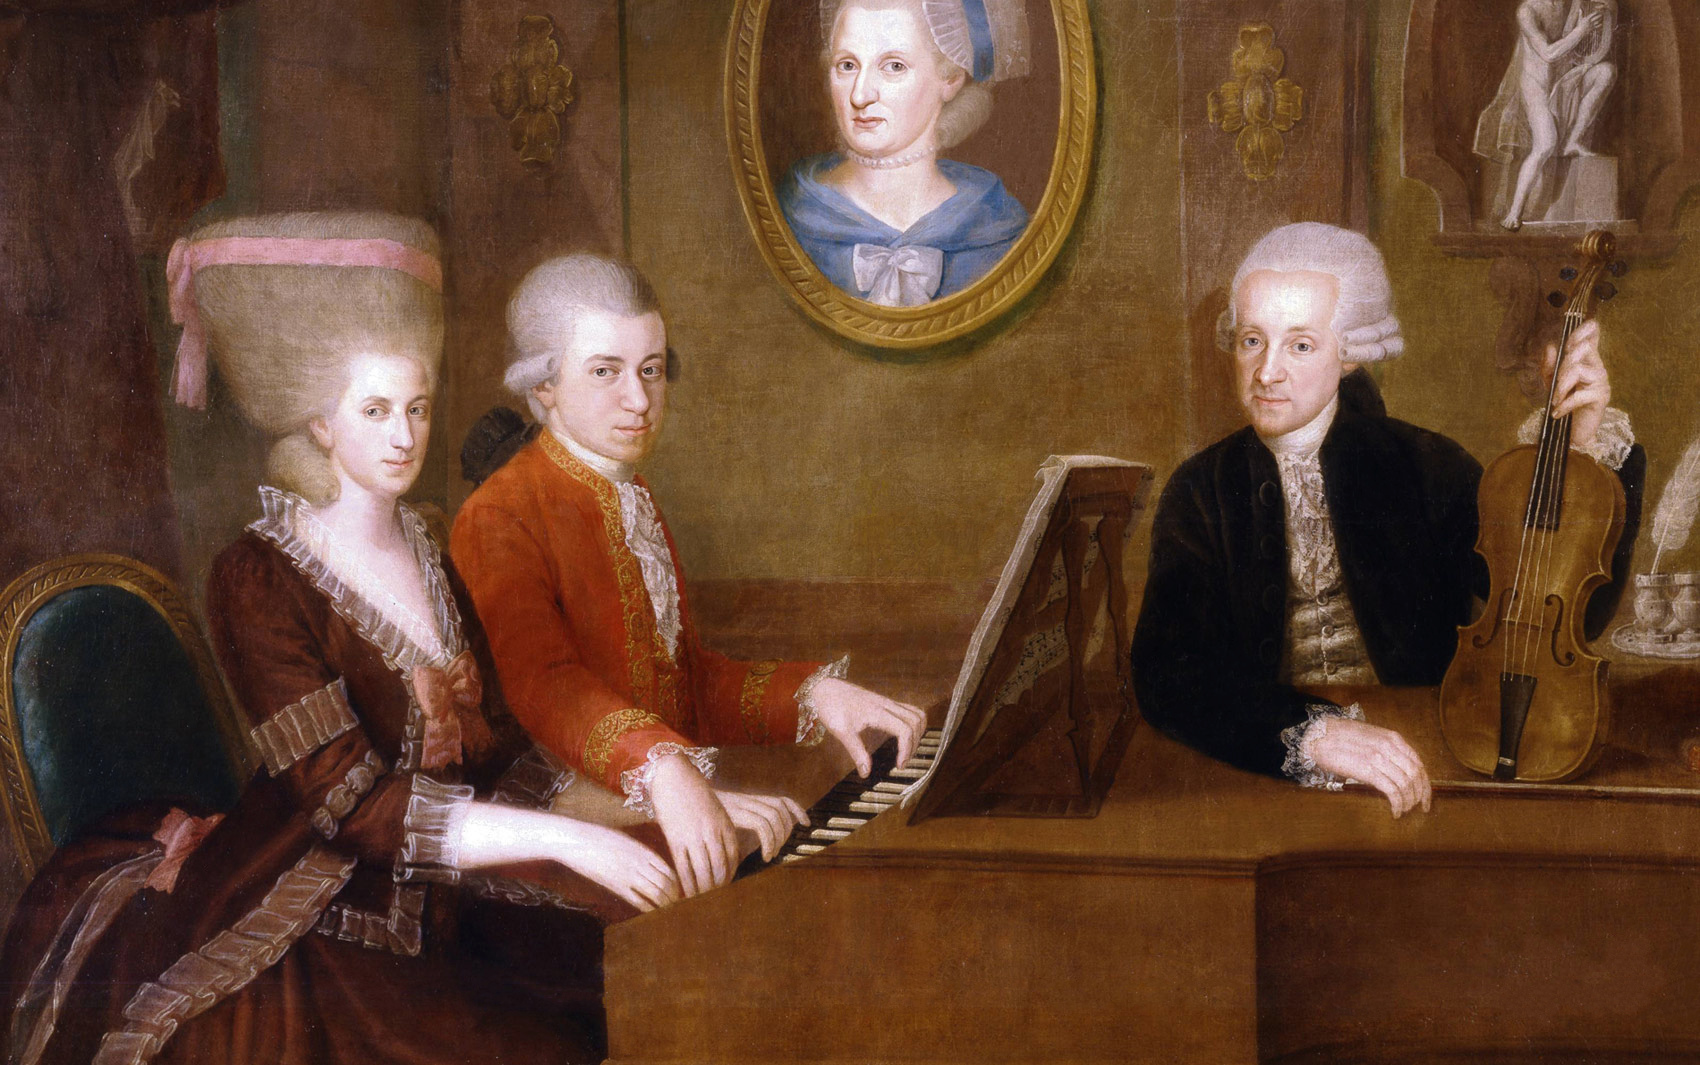 Mozart at the piano with his sister Maria Anna and father Leopold